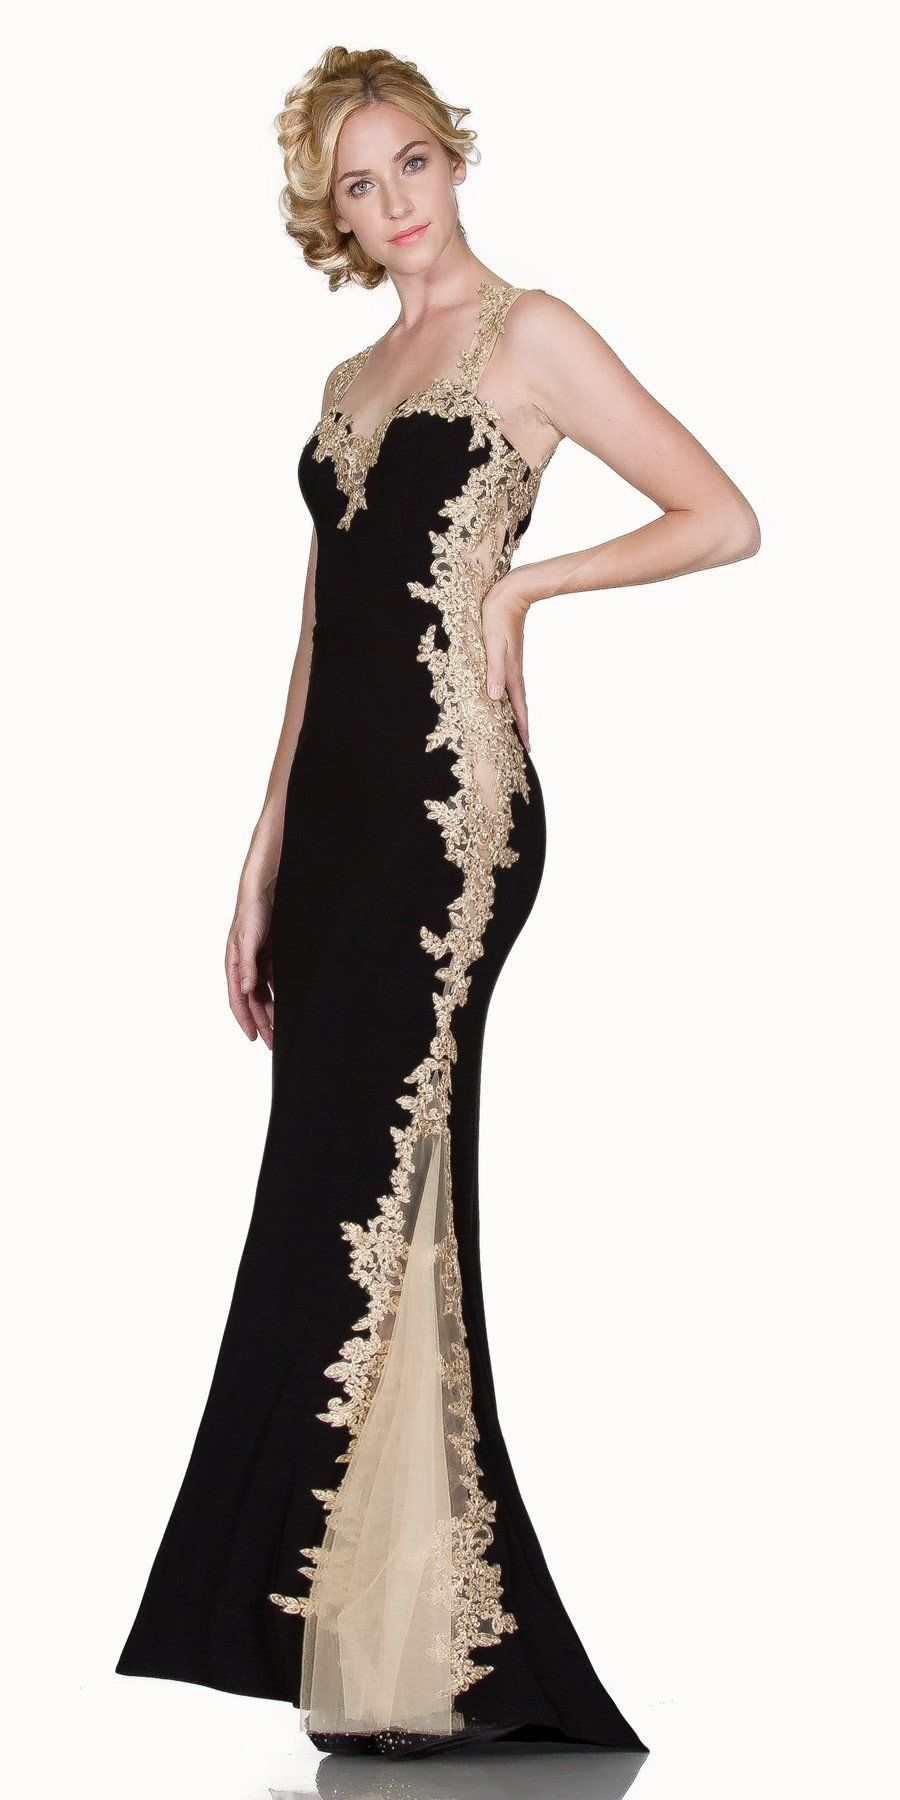 L6419 - Sheath Mermaid Silhouette Gown Red/Gold Floor Length Lace ...